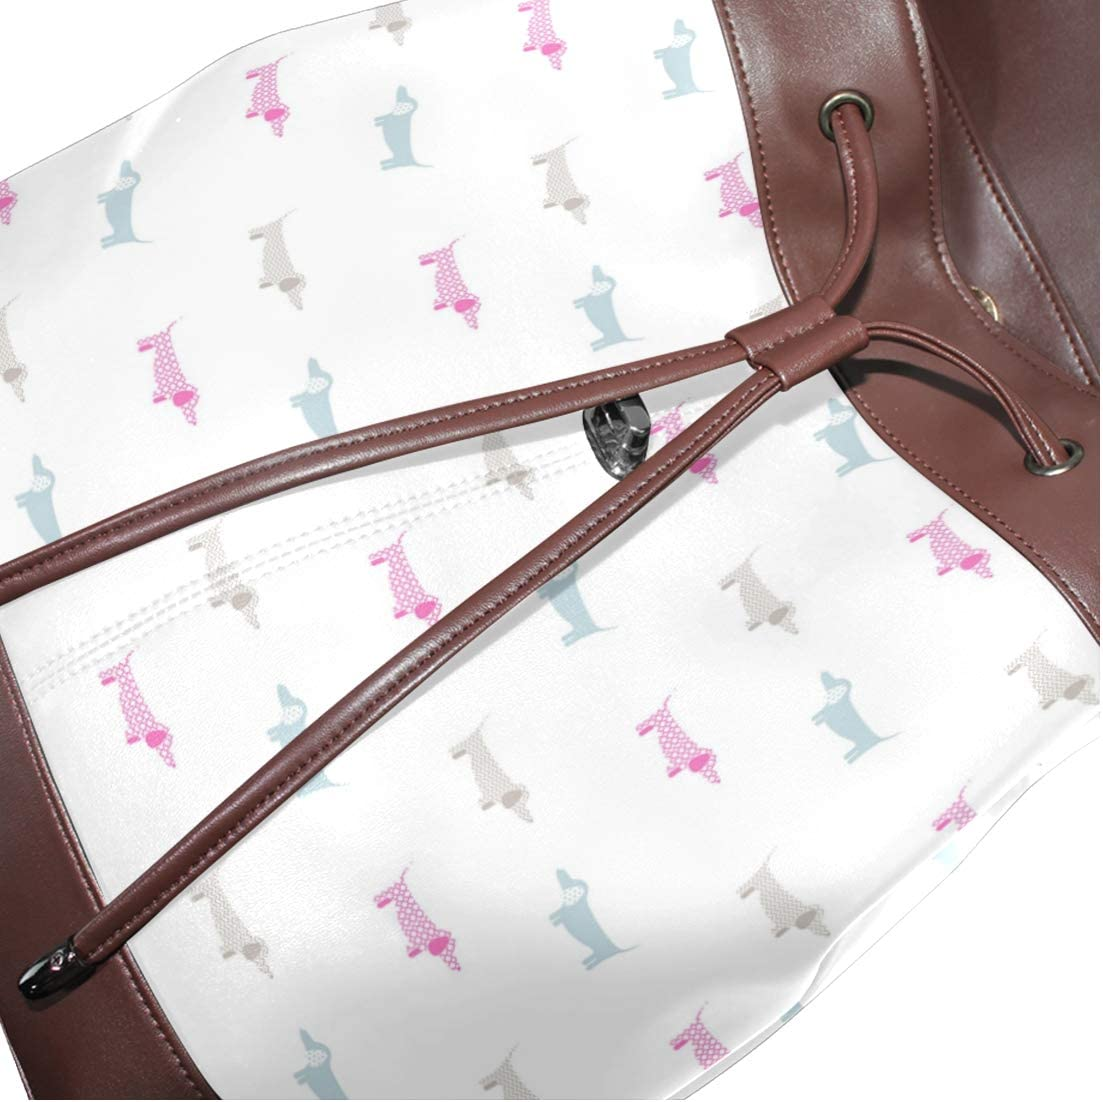 Unisex PU Leather Backpack Dachshund Gifts for Women Pink Print Womens Casual Daypack Mens Travel Sports Bag Boys College Bookbag